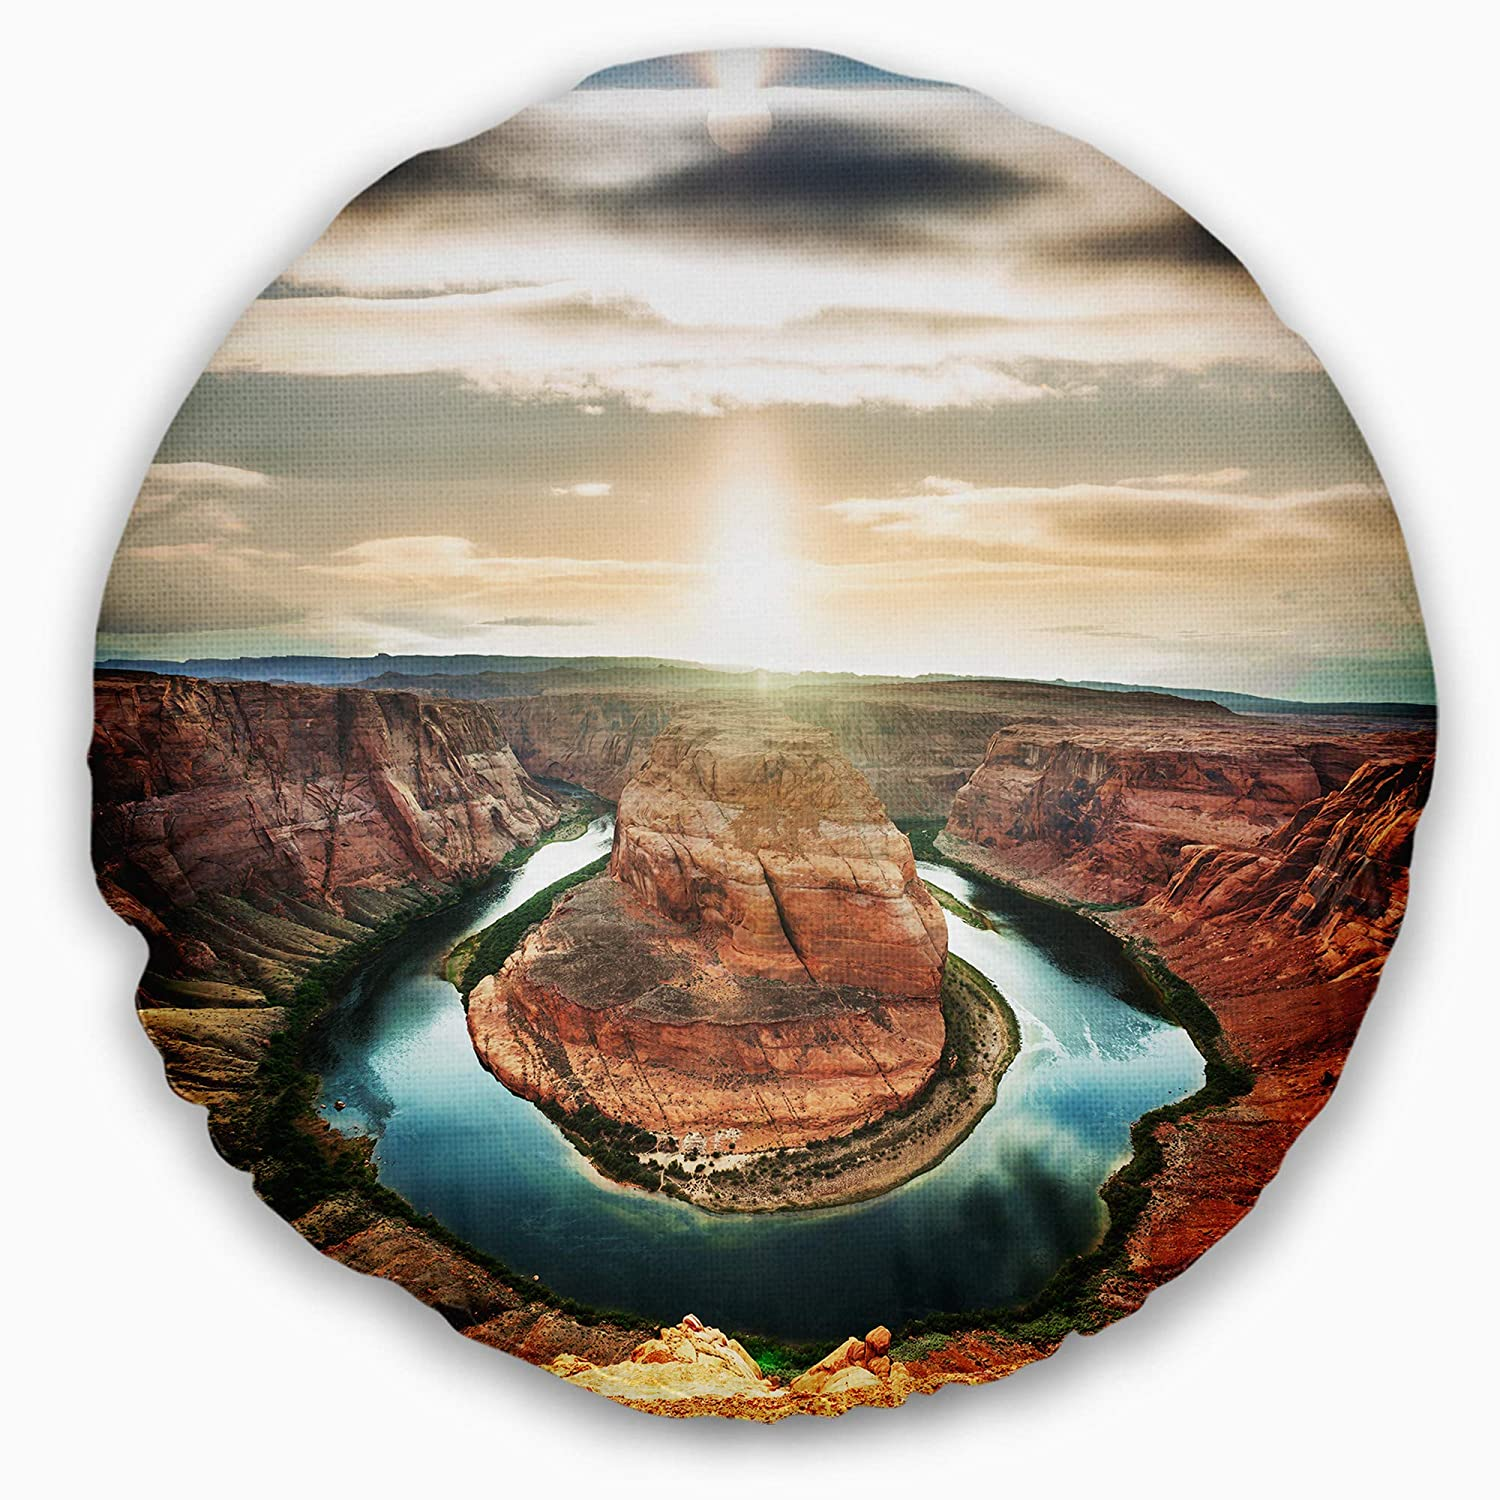 Sofa Throw Pillow 20 Designart CU12268-20-20-C Horseshoe Bend at Sunset Landscape Printed Round Cushion Cover for Living Room